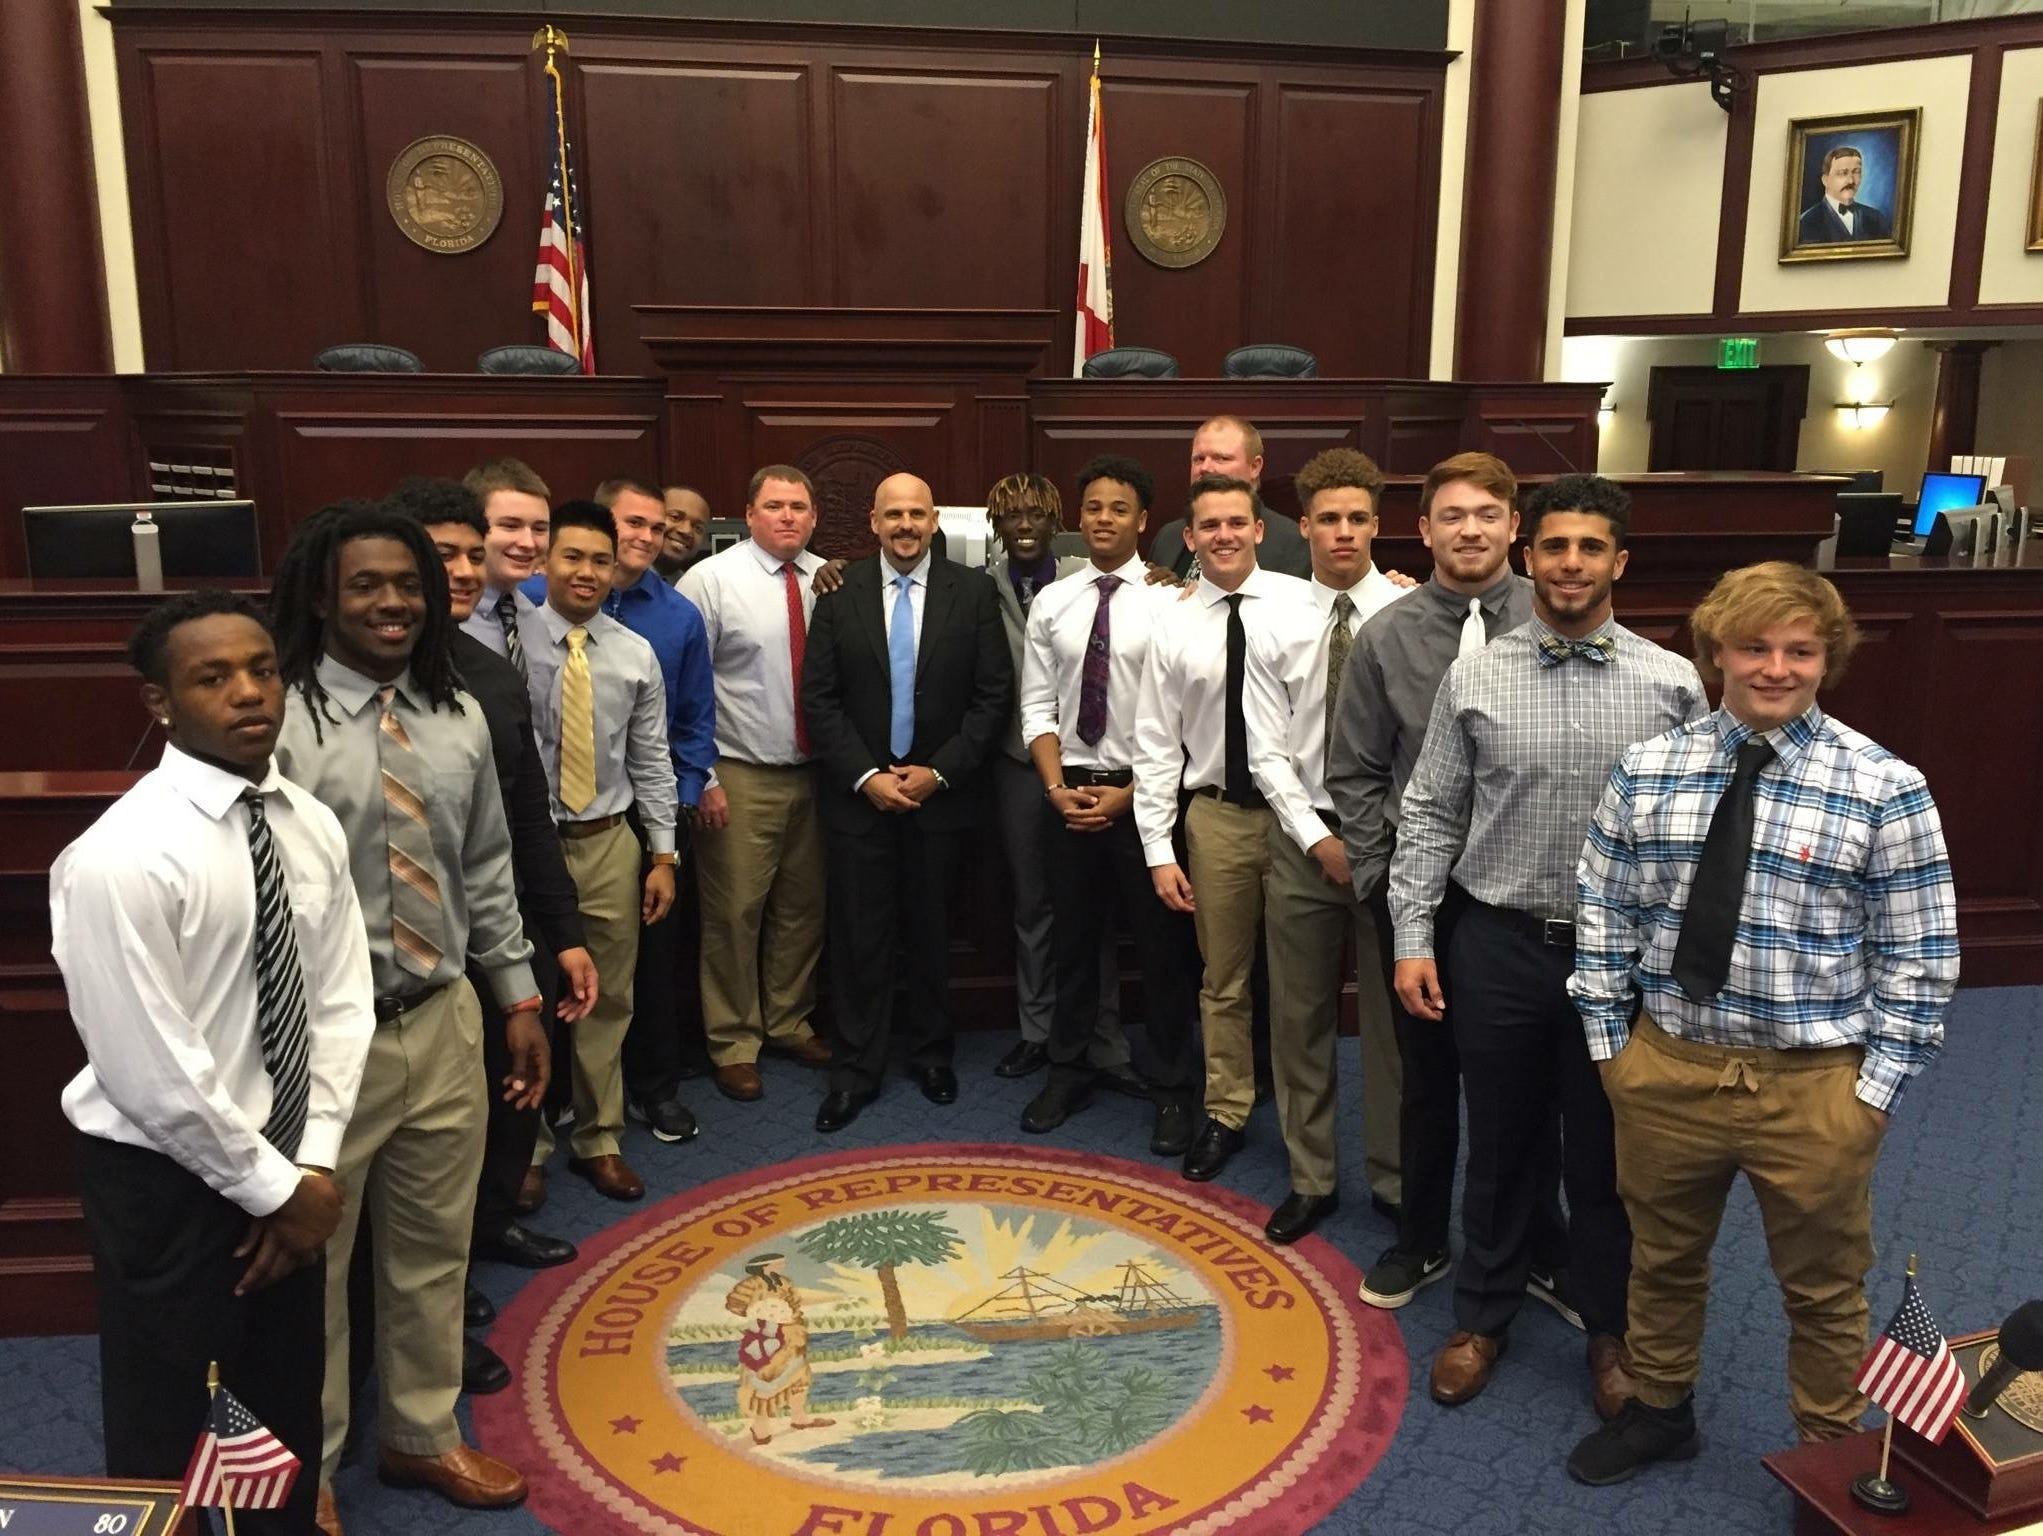 Members of the Viera High football team join state Rep. Ritch Workman in legislative chambers on Tuesday.